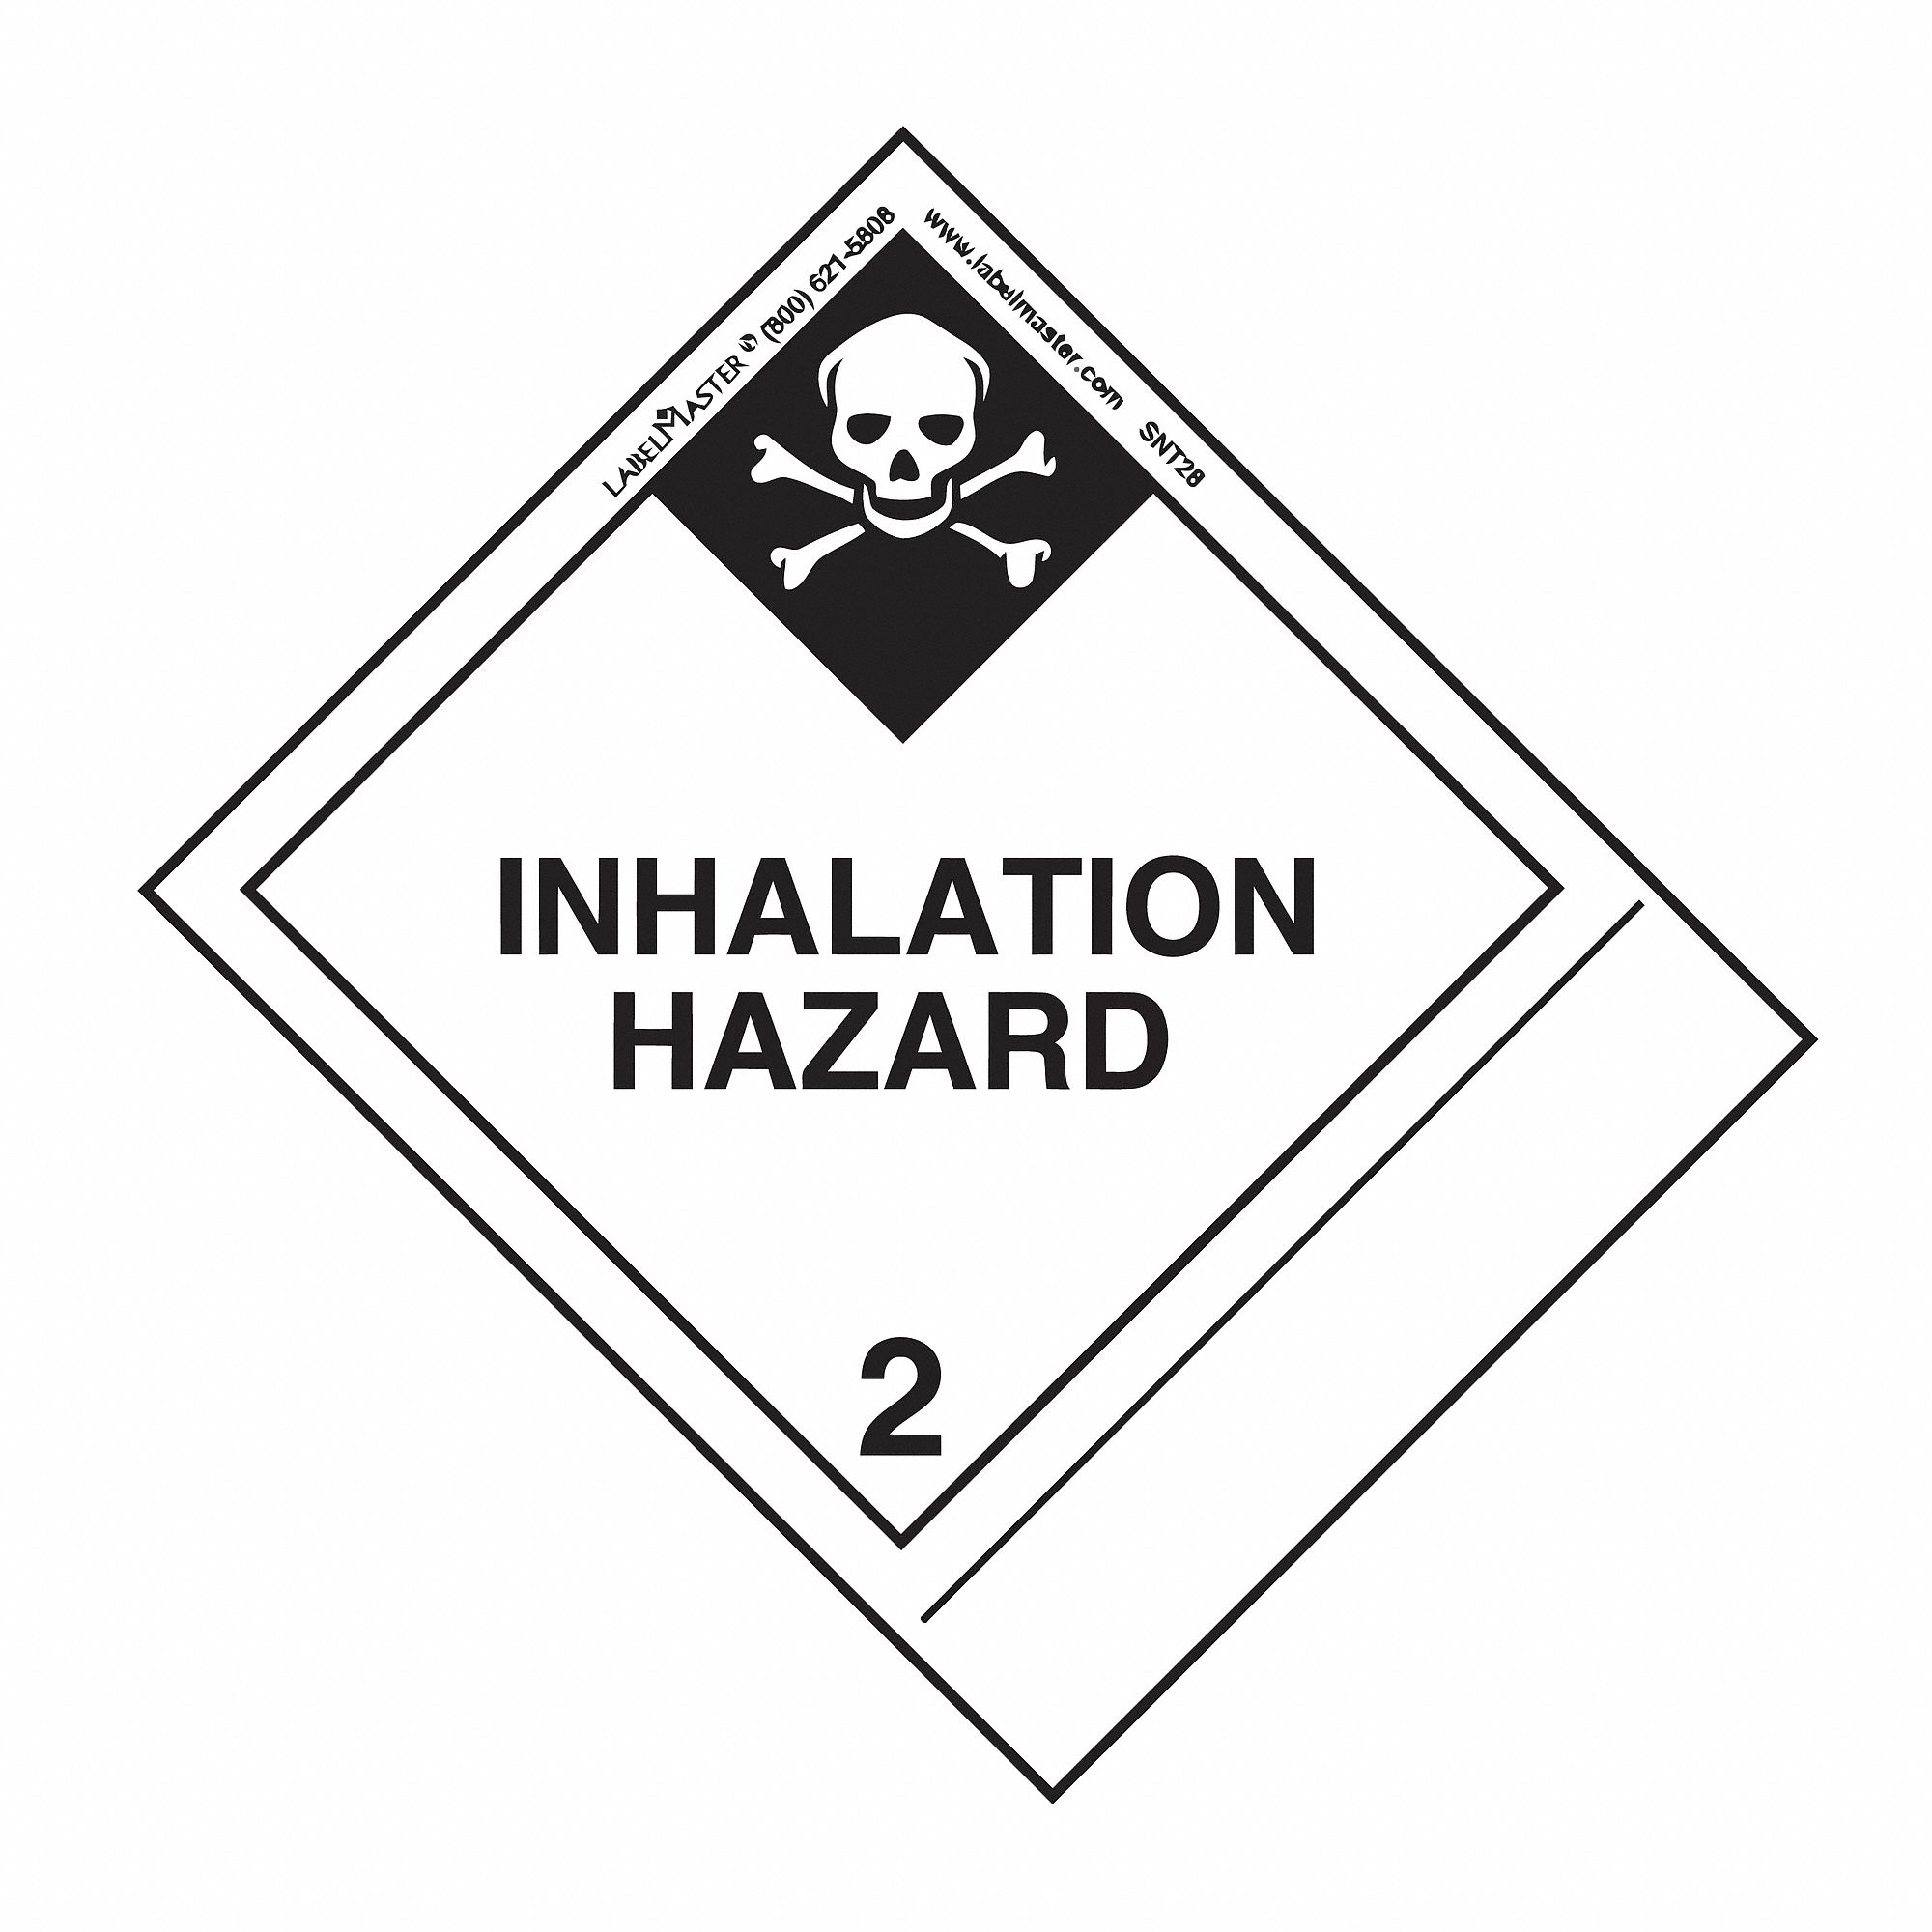 49 cfr 172 300 and 172 400 icao 5 2 and 5 3 imo 5 2 vehicle Kate Spade 120mm x 100mm class 2 paper inhalation hazard label white black